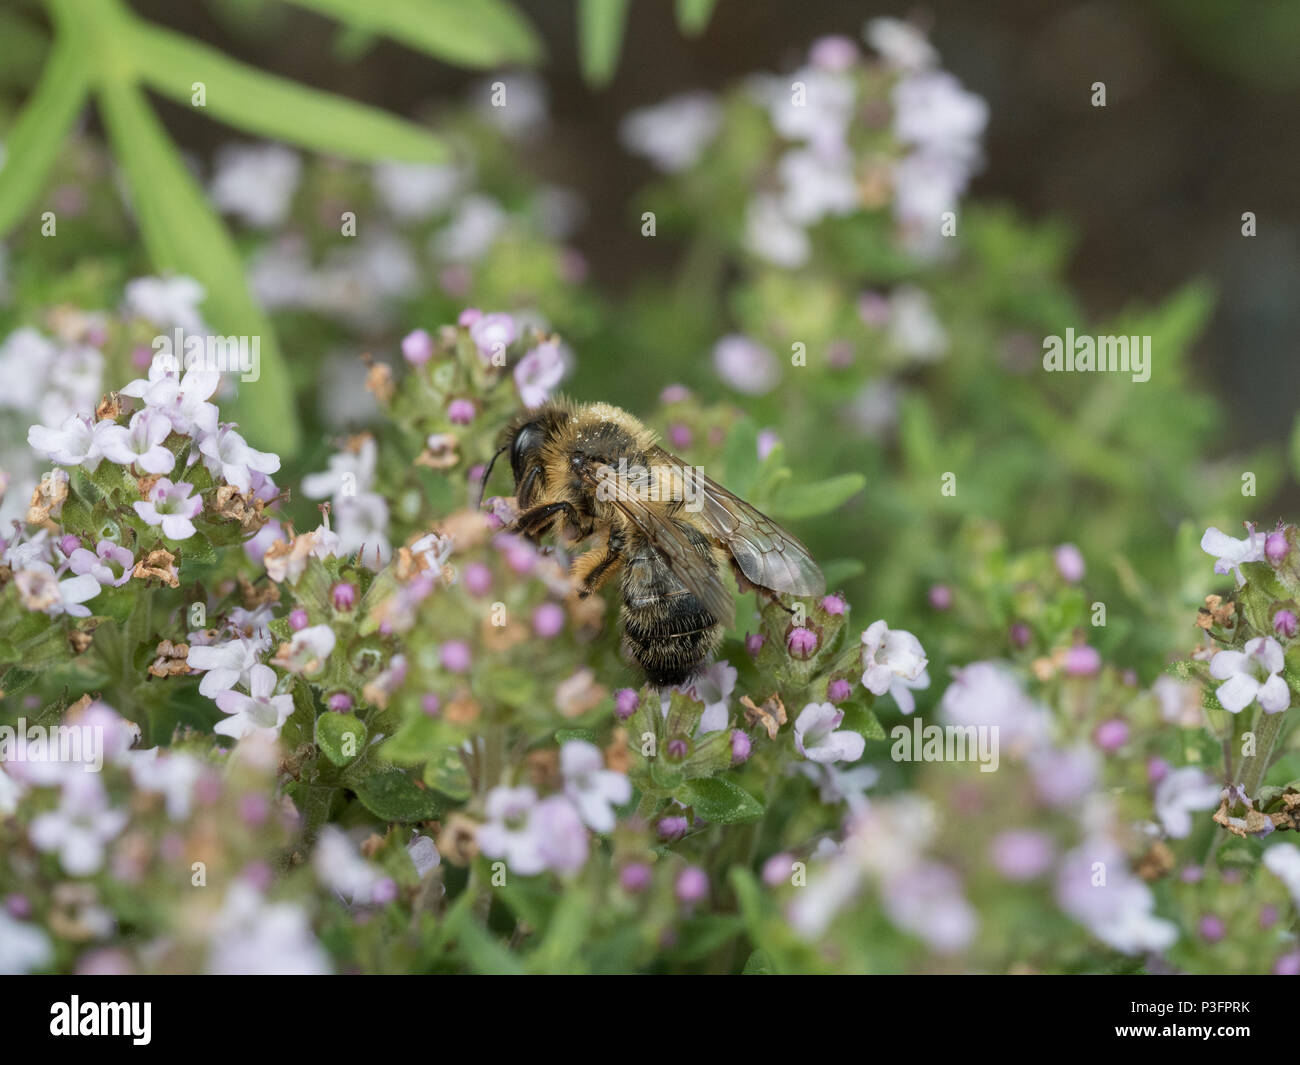 A close up of a communal mining bee feeding on thyme flowers - Stock Image